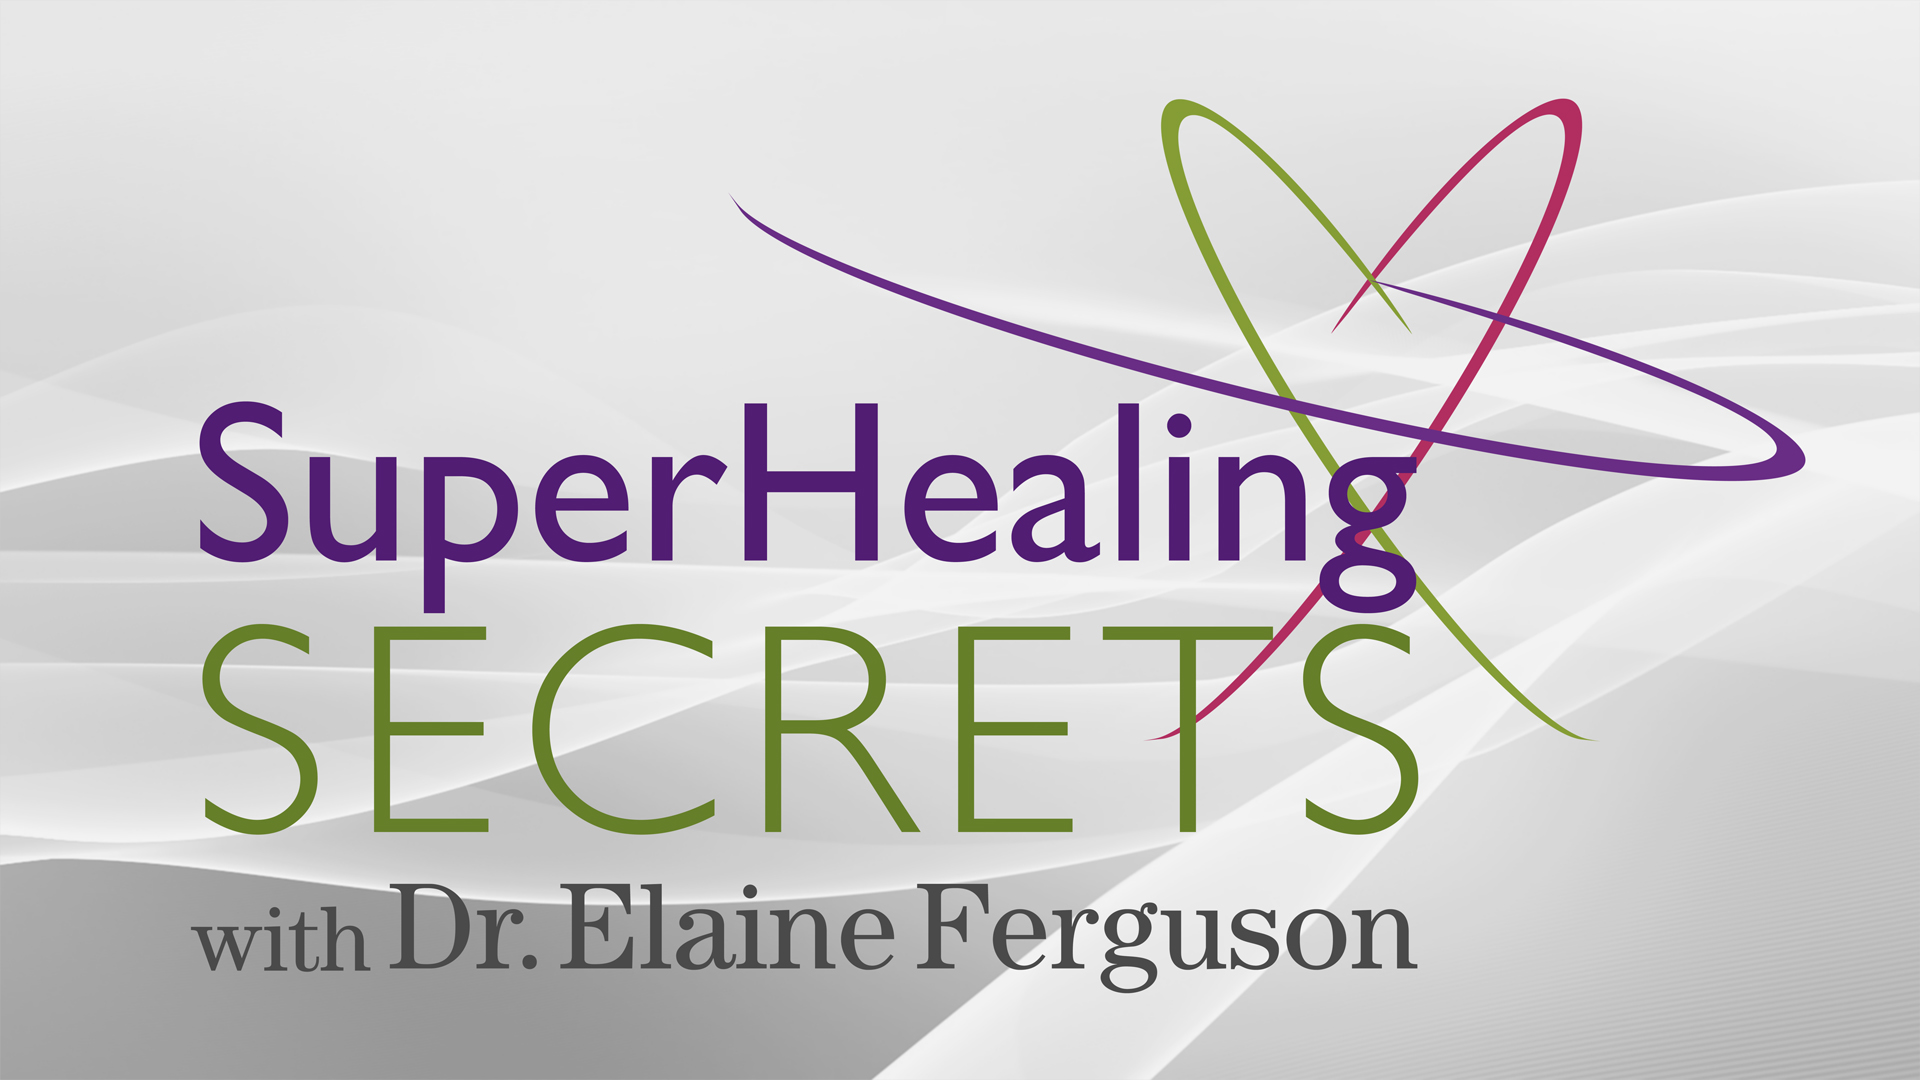 Watch SuperHealing Secrets!